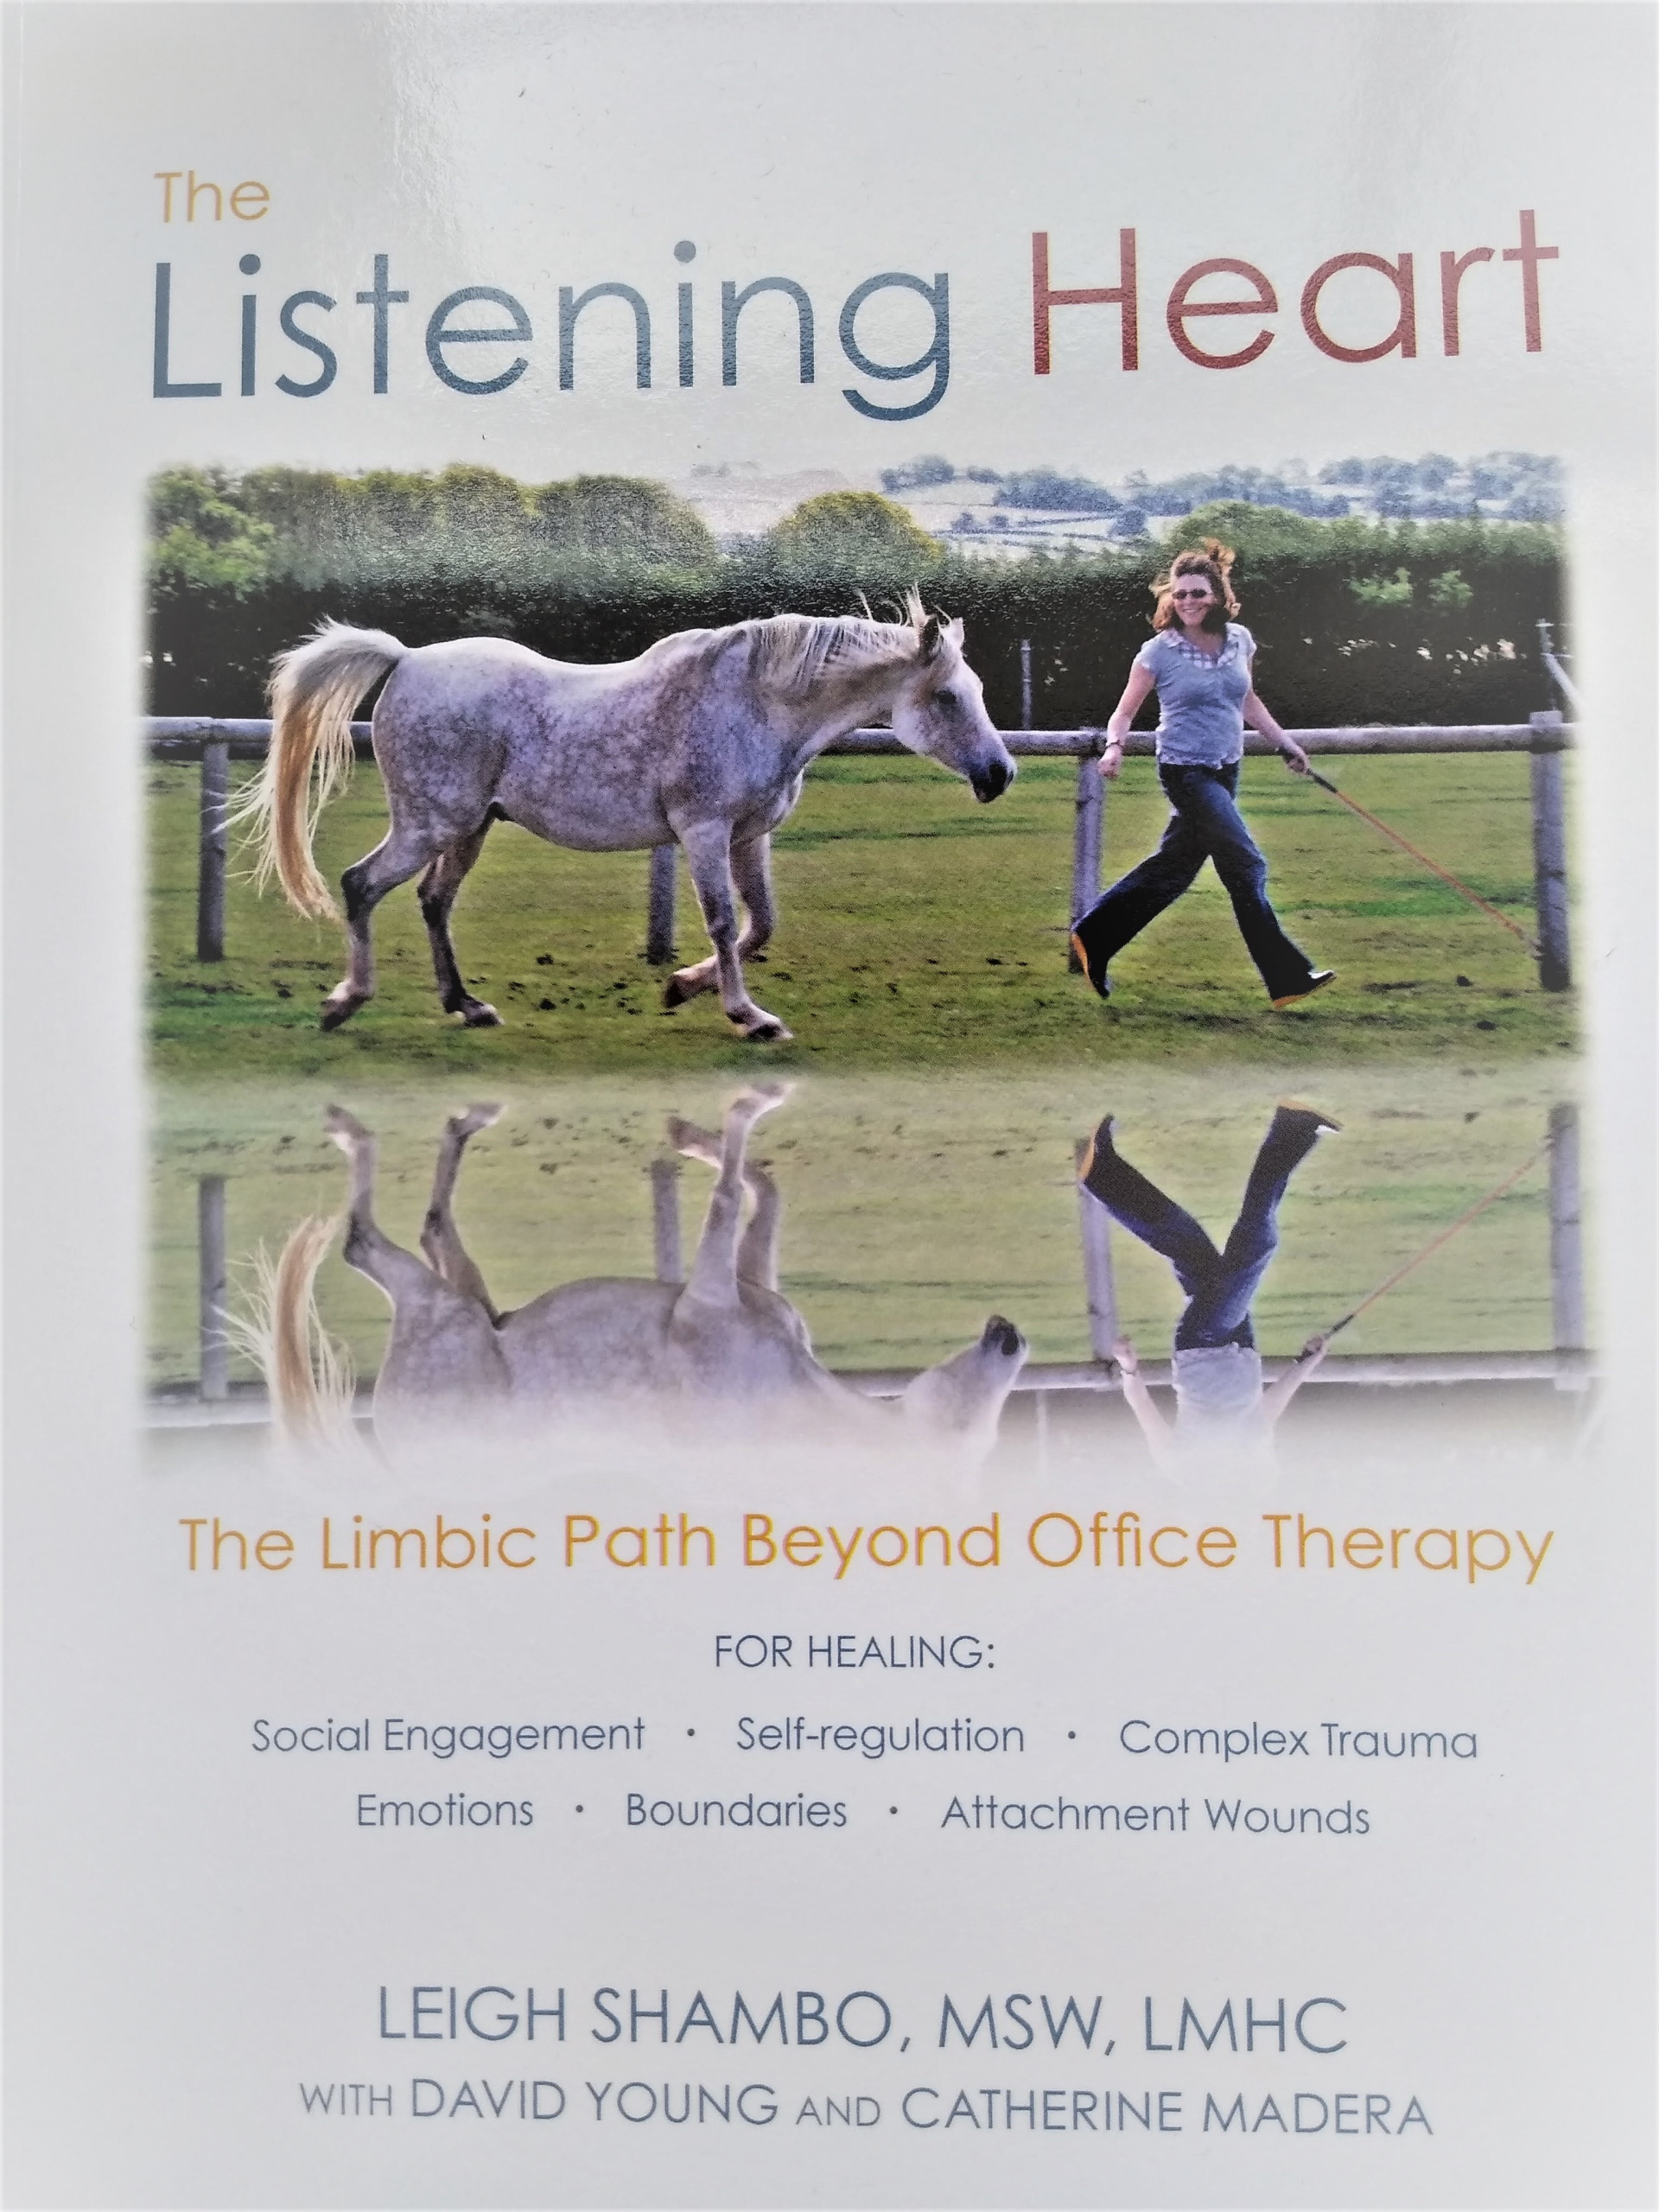 The Listening Heart by Leigh Shambo, MSW, LMHC